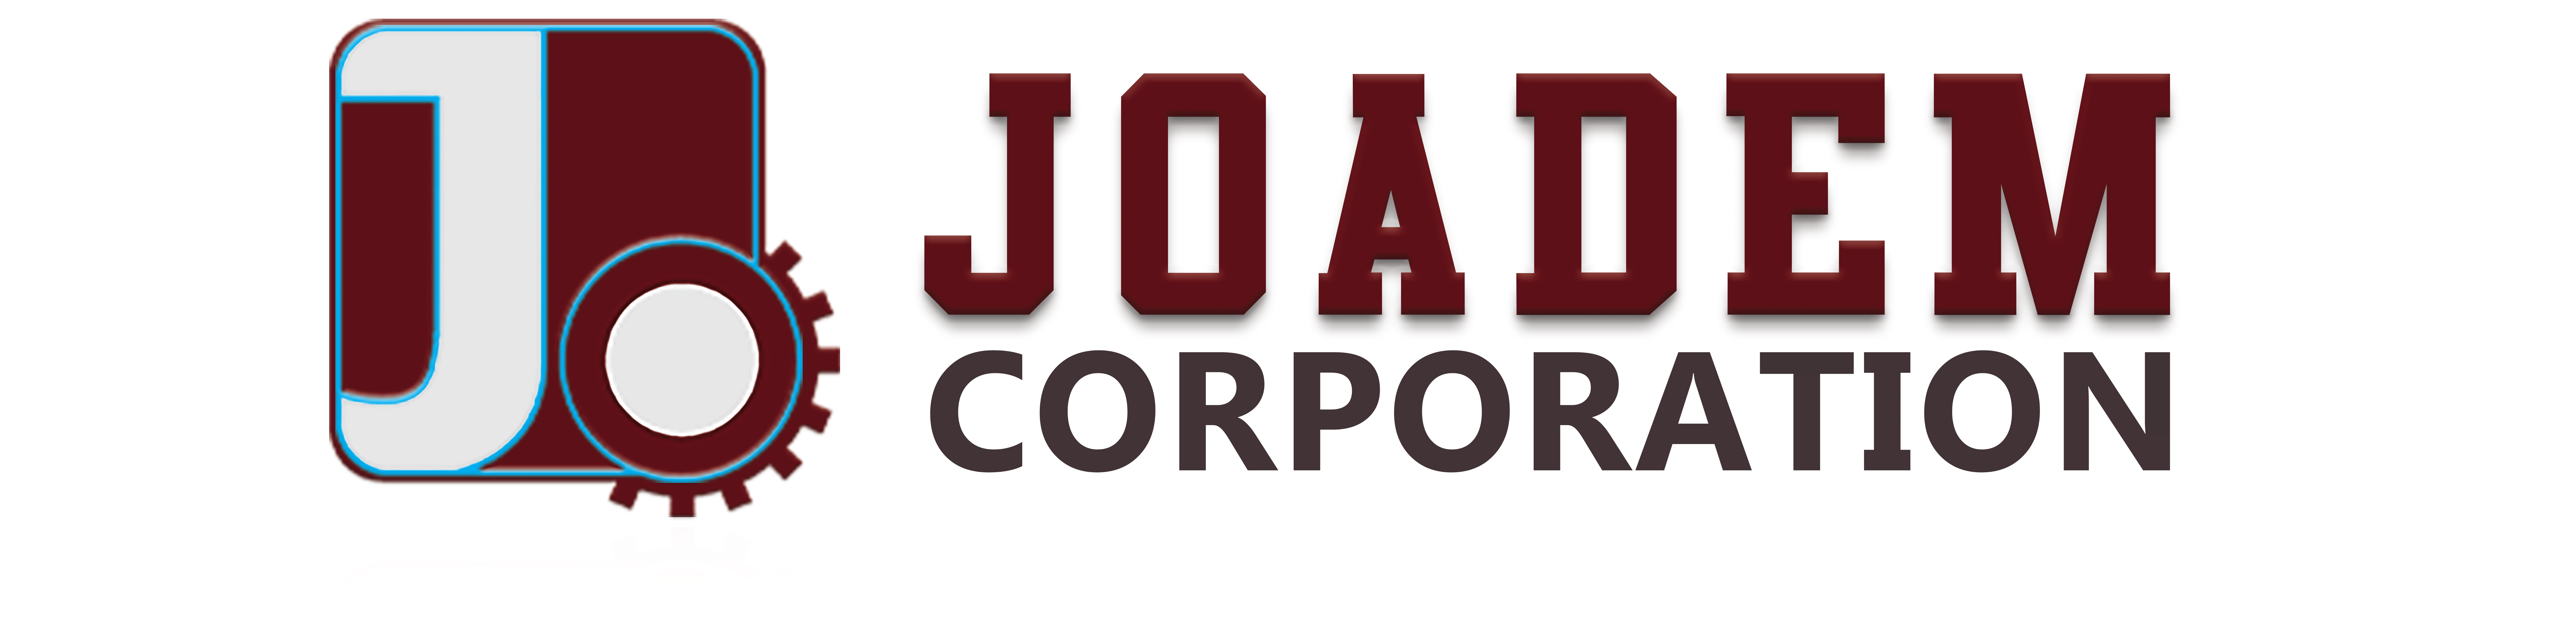 https://joademcorps.com/wp-content/uploads/2019/03/cropped-BIG-accepted-logo-1.png